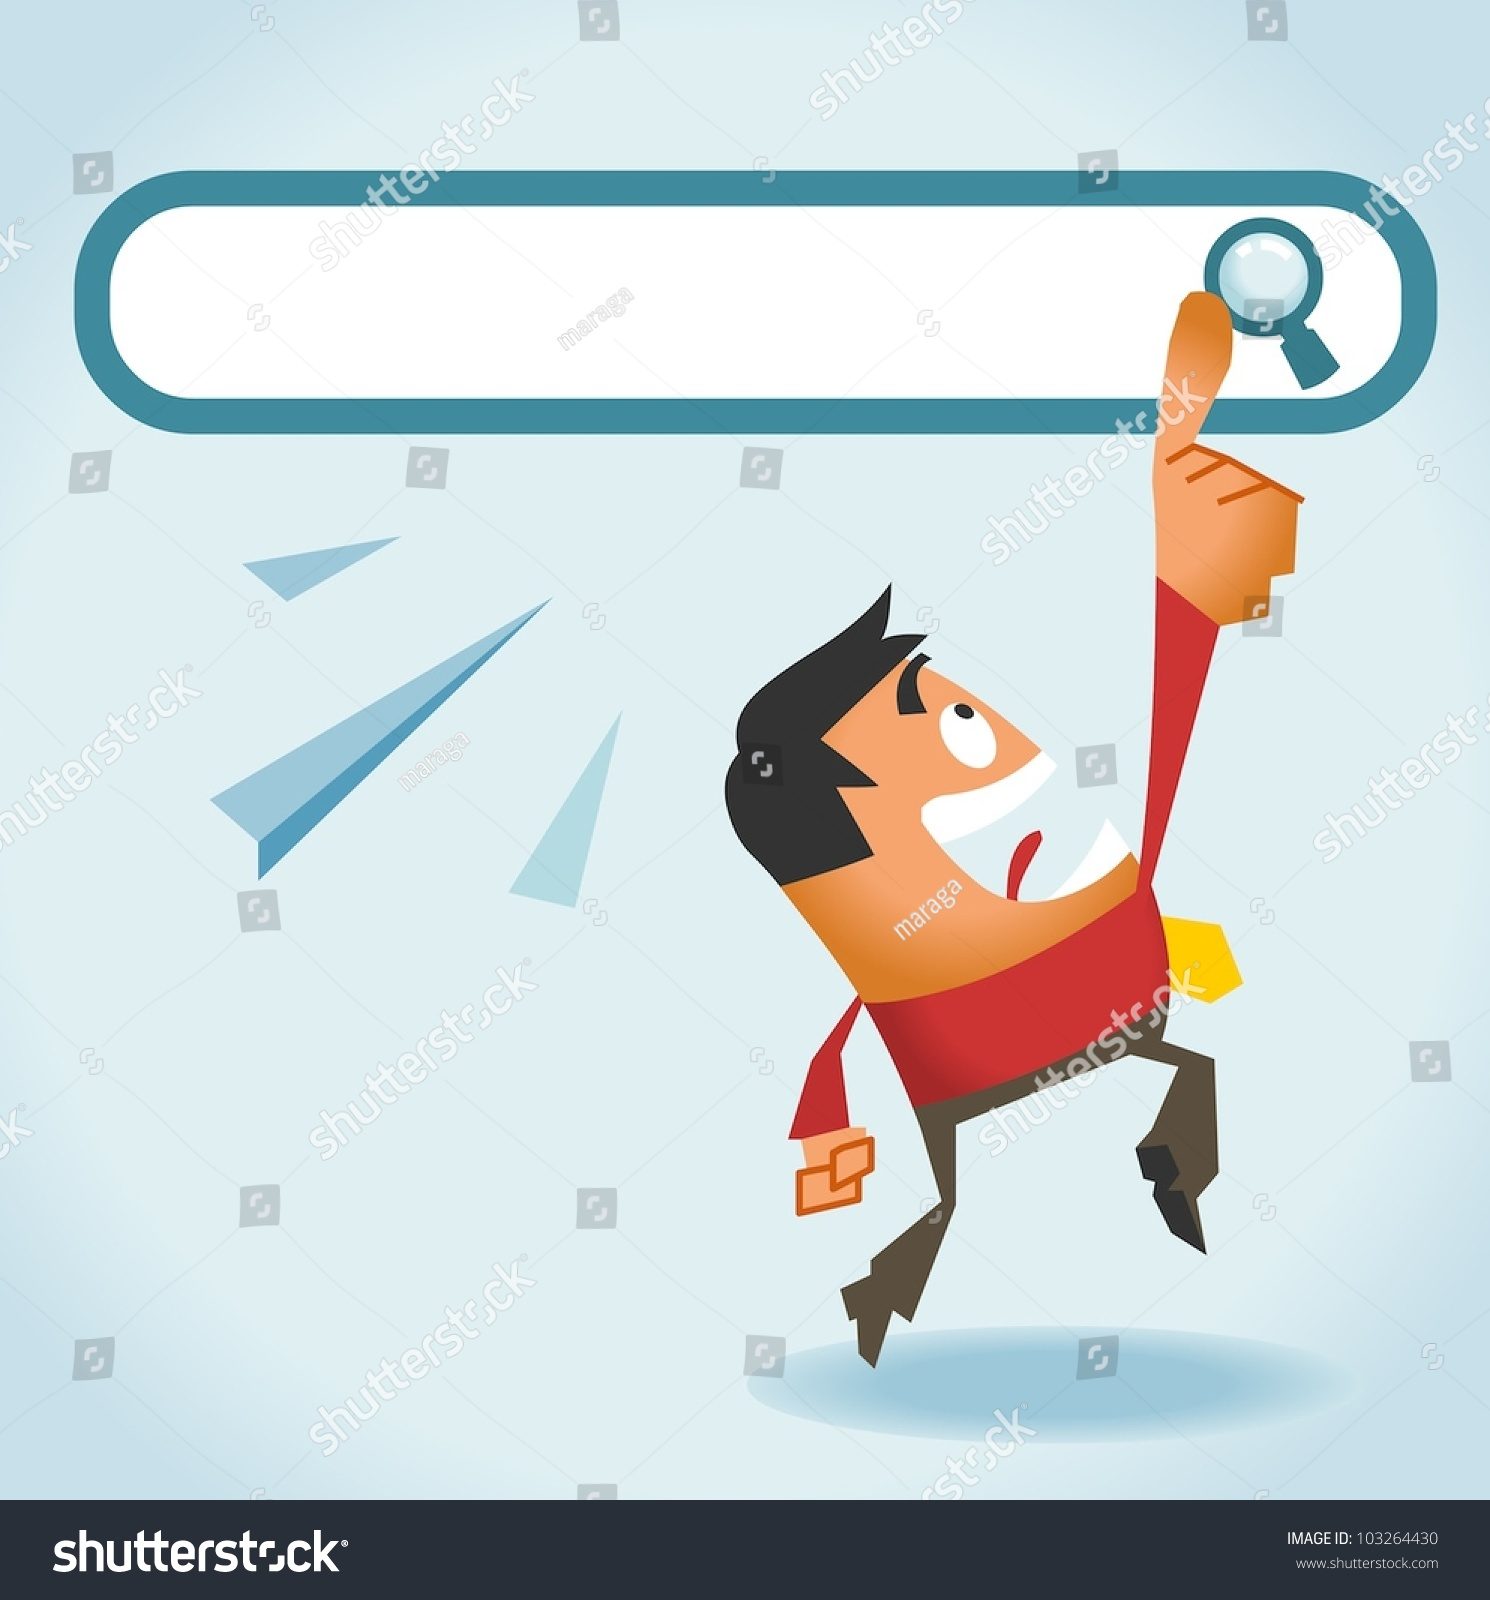 Search: Search Engine All We Need Vector Stock Vector 103264430